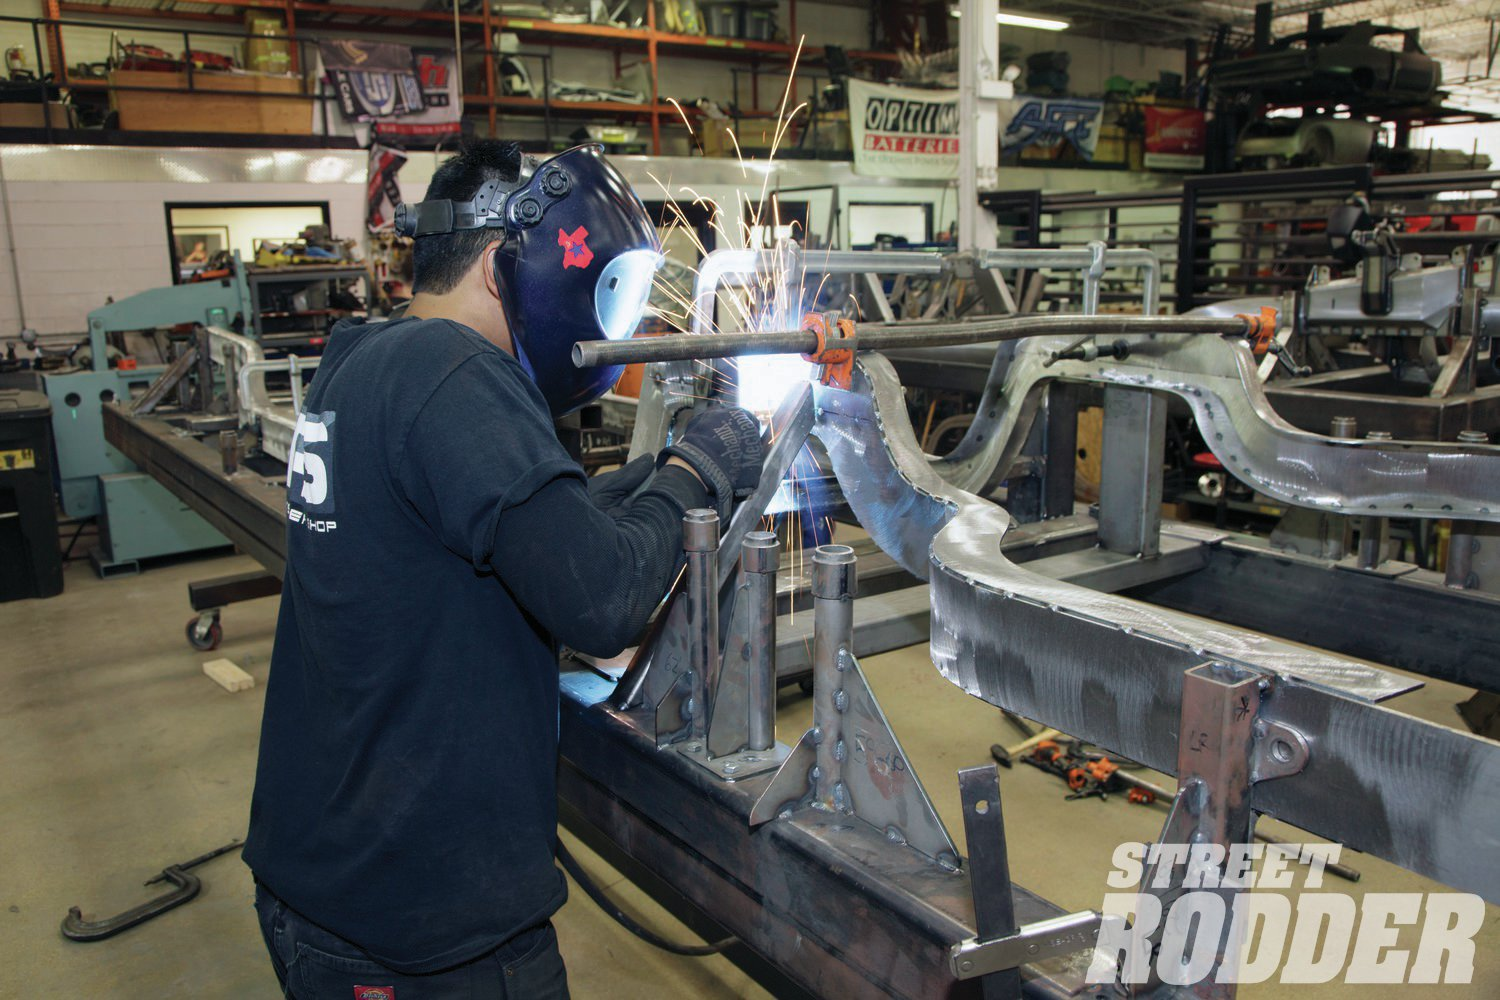 3. Zach Flores begins welding the 'rails together. By fabricating the frame out of separate pieces the complicated contours required to fit a perimeter frame under '58-64 Chevys without extensive floor modifications can be created.